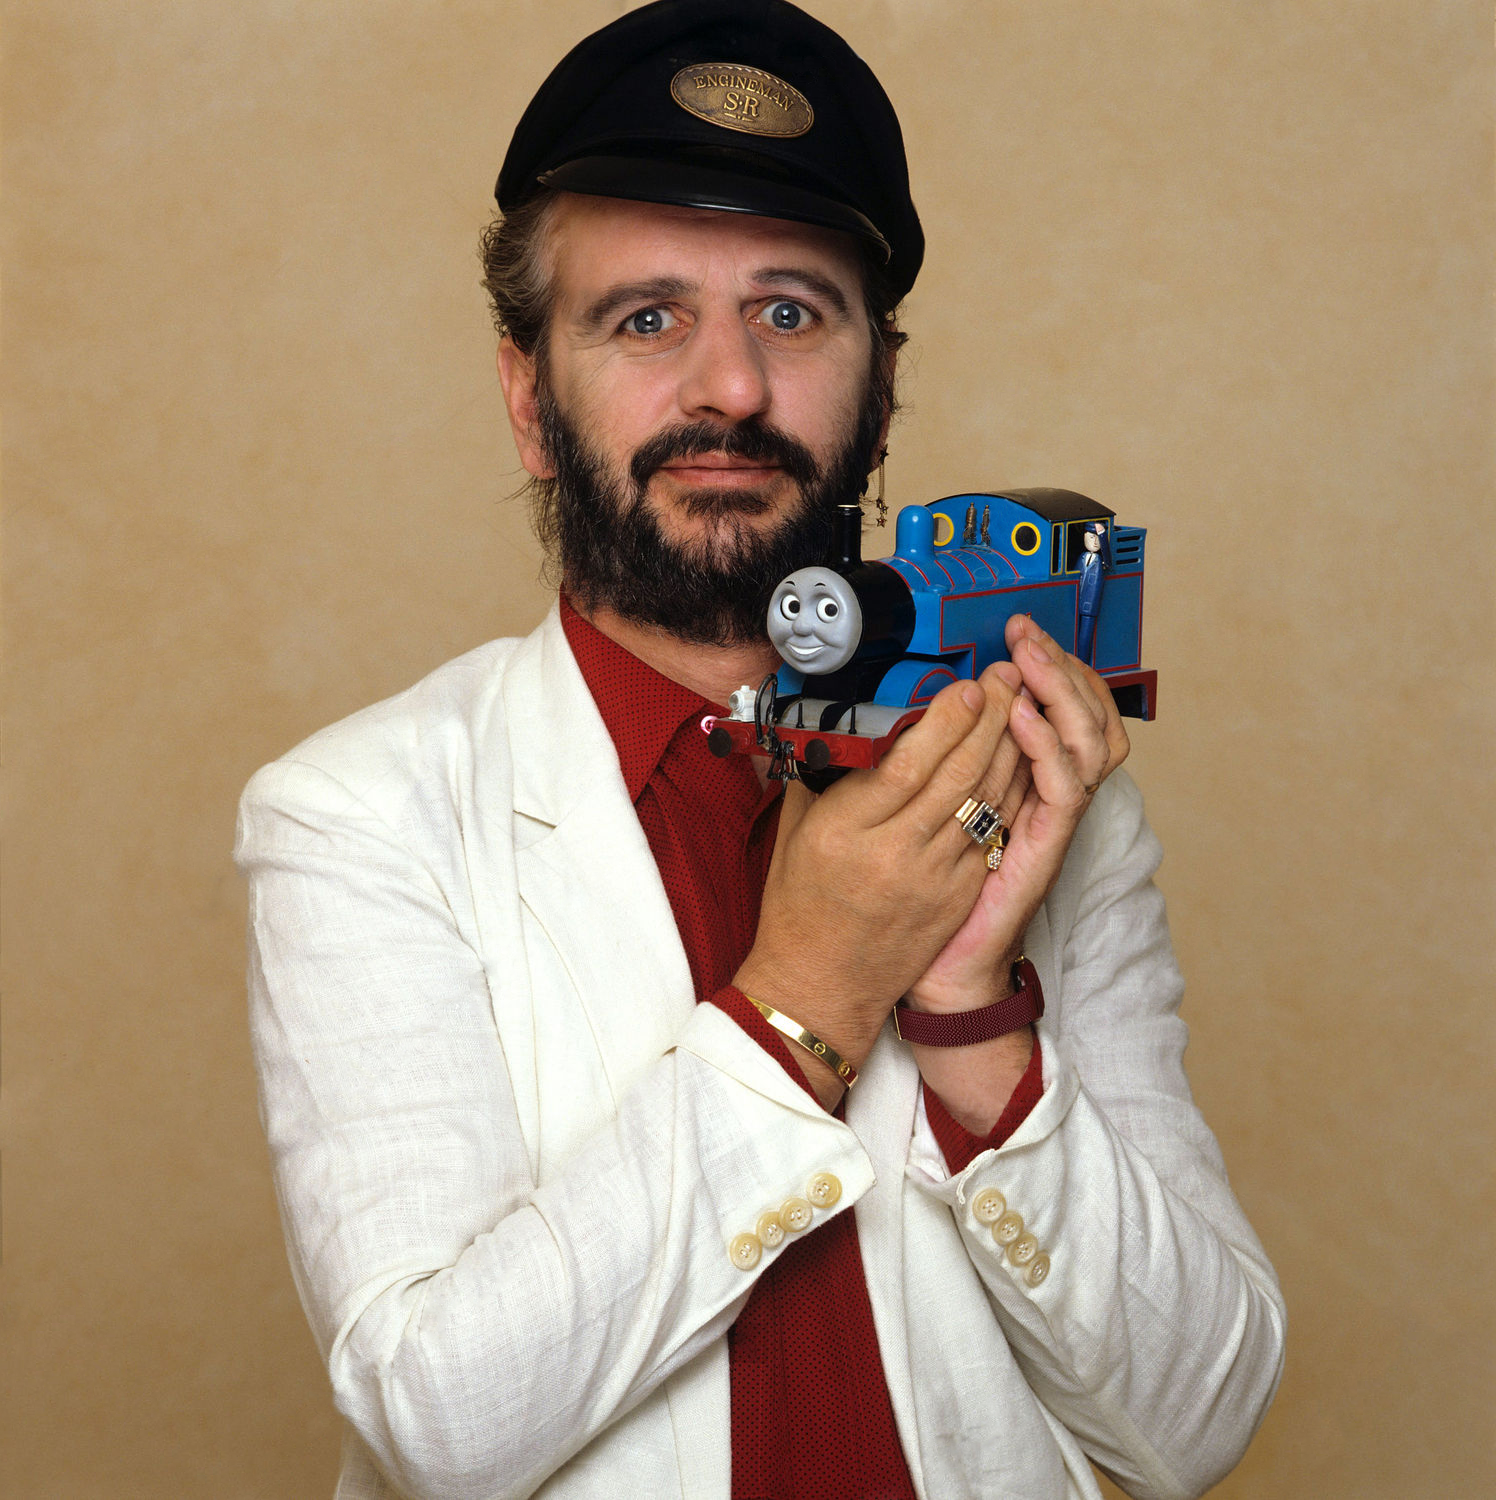 File:RingoStarrwithThomas.png